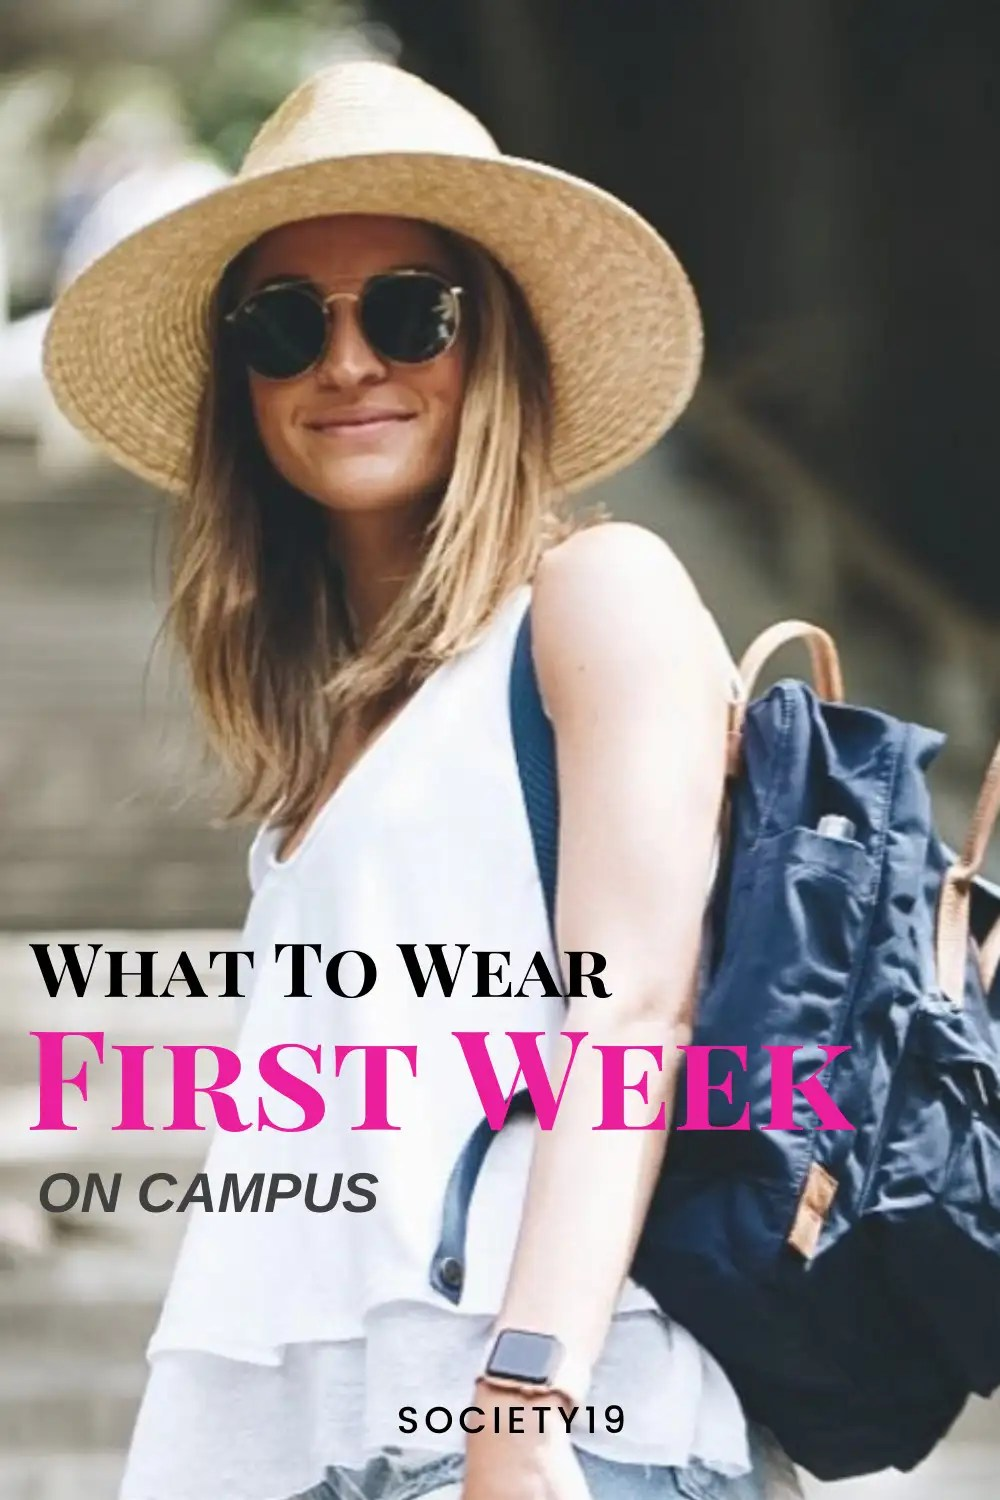 What To Wear For You First Week On Campus